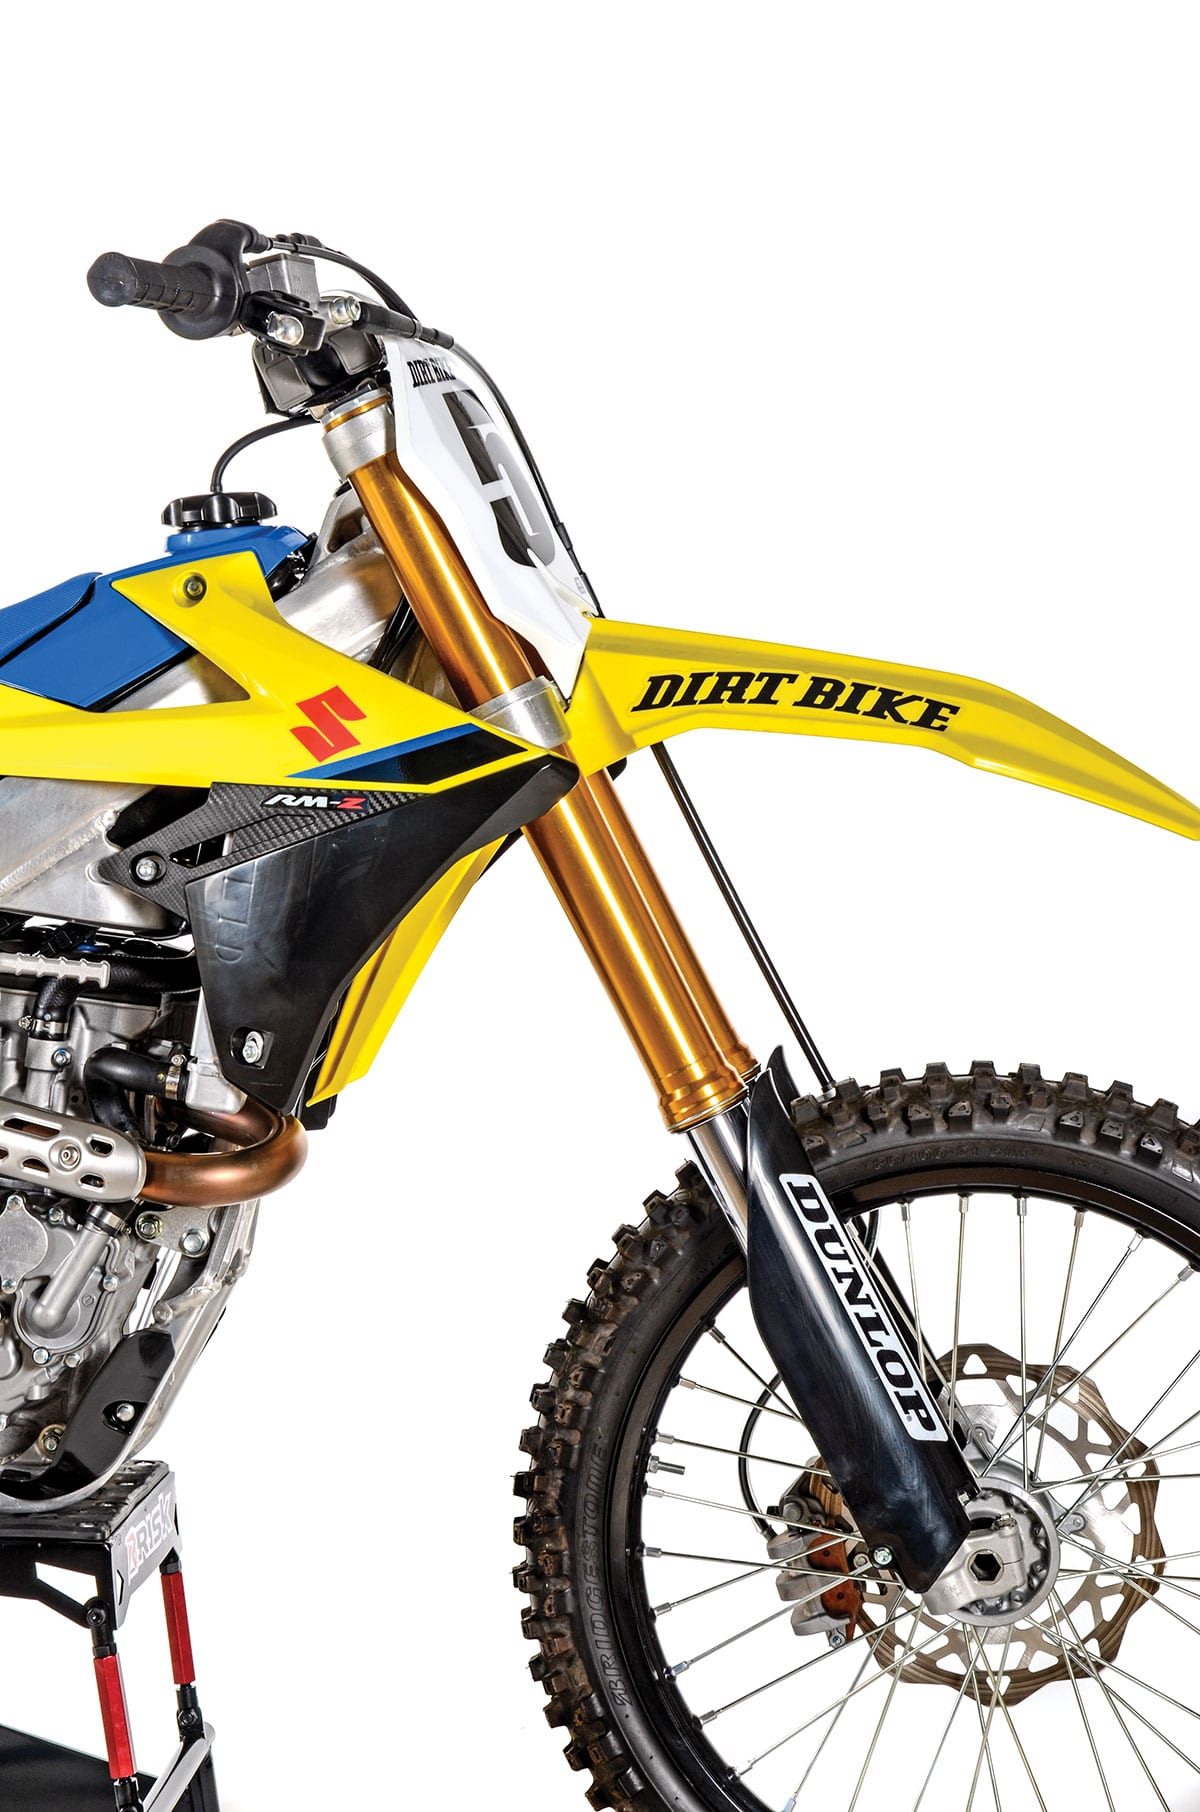 2020 SUZUKI RM-Z450: FULL TEST | Dirt Bike Magazine